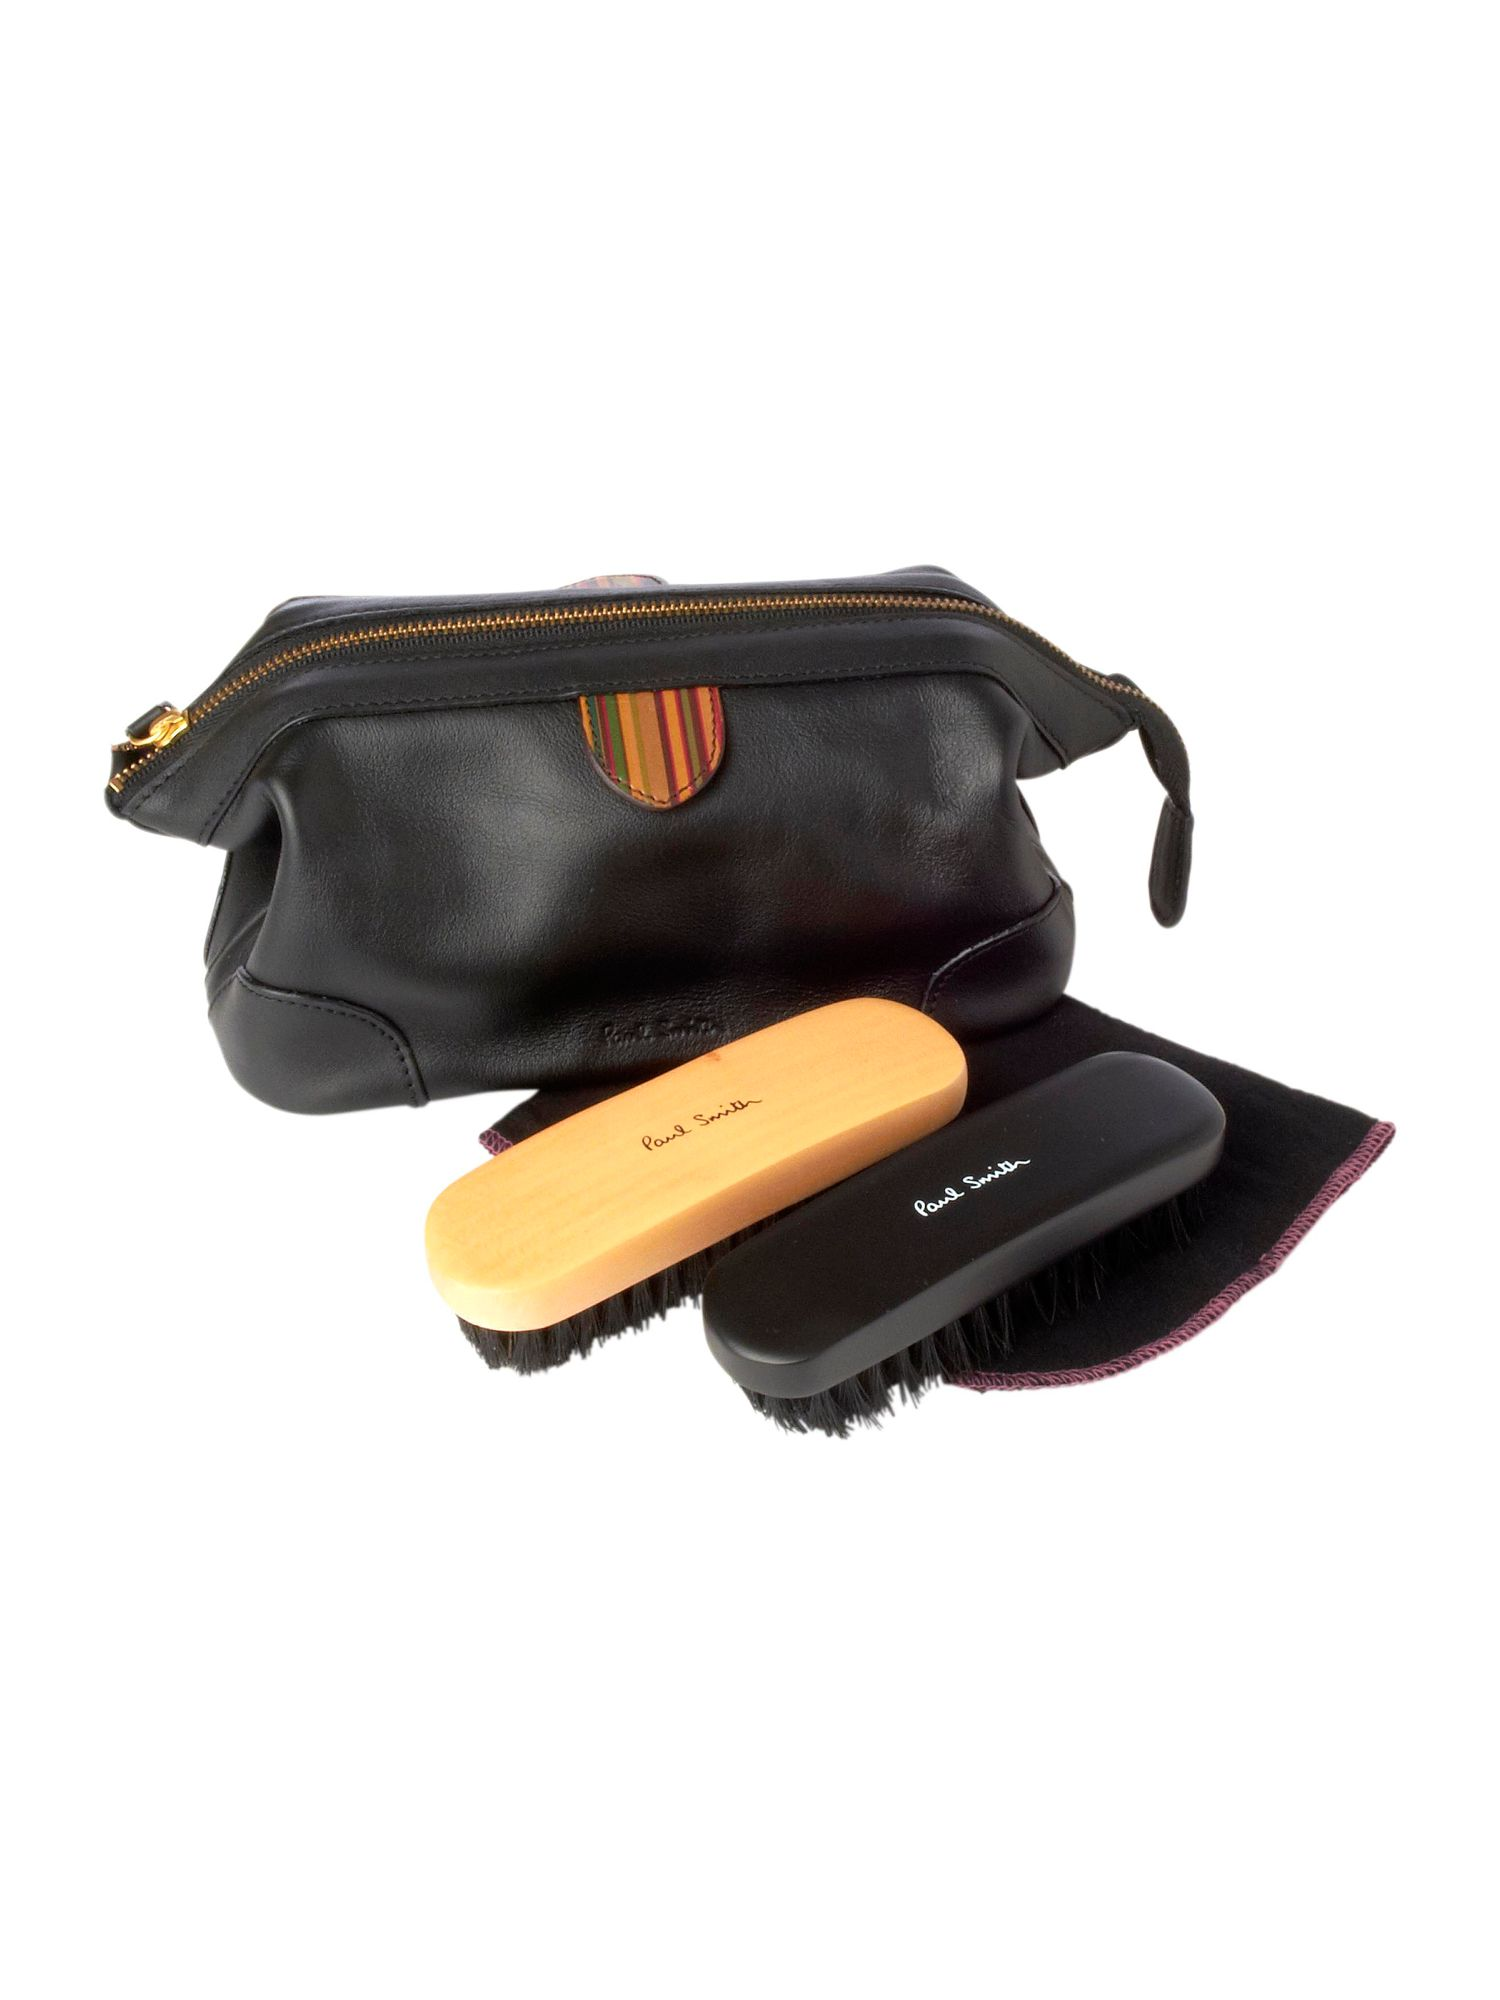 Paul Smith Shoe care kit